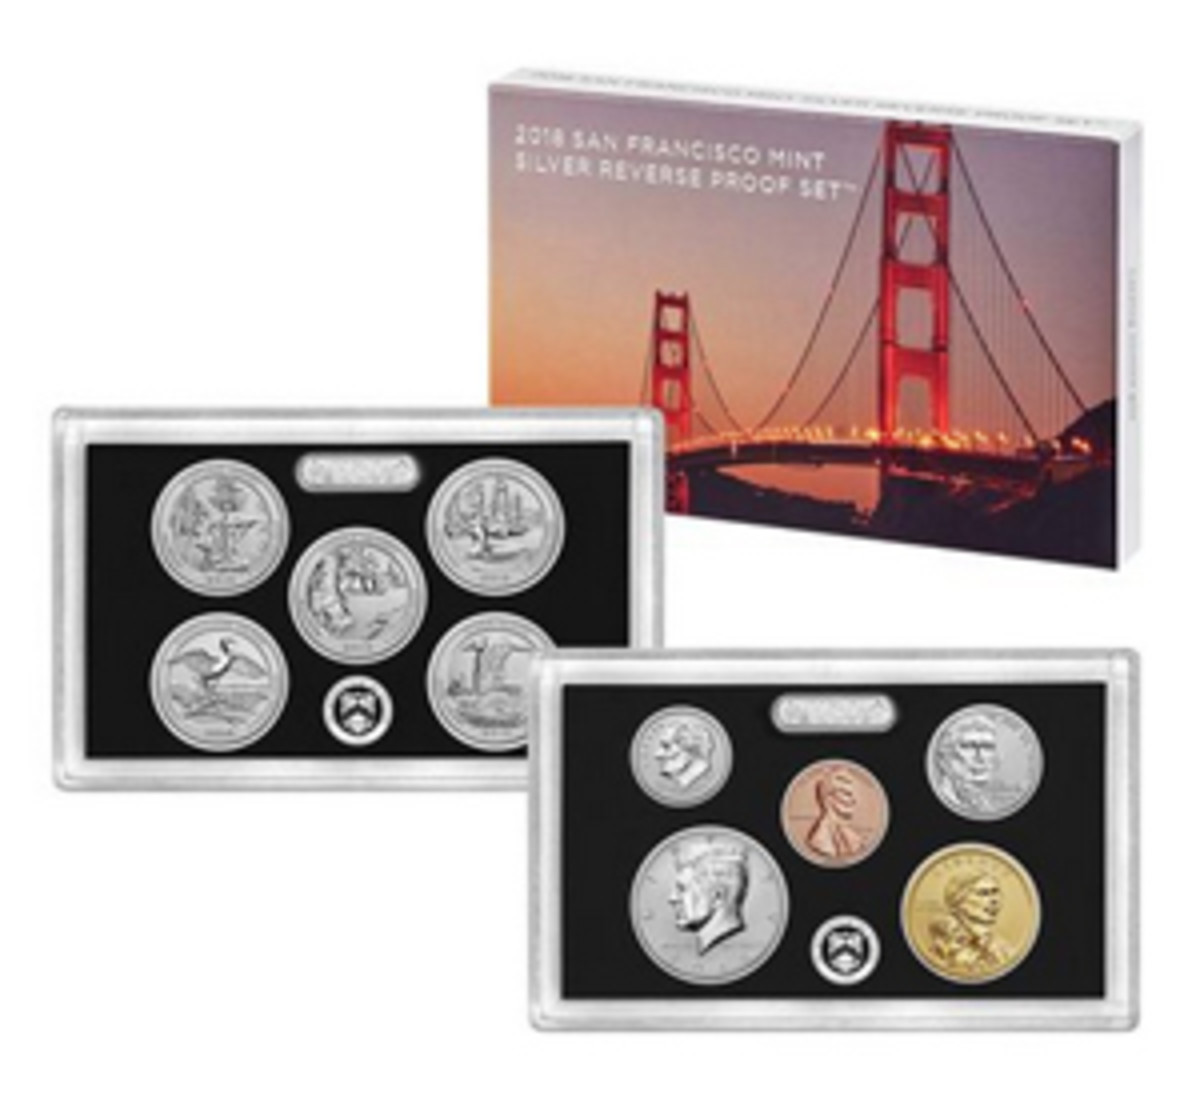 Some buyers were disappointed that the 2018 San Francisco Silver Reverse Proof Set did not sell out on the first day of sales July 23. (Image courtesy usmint.gov)